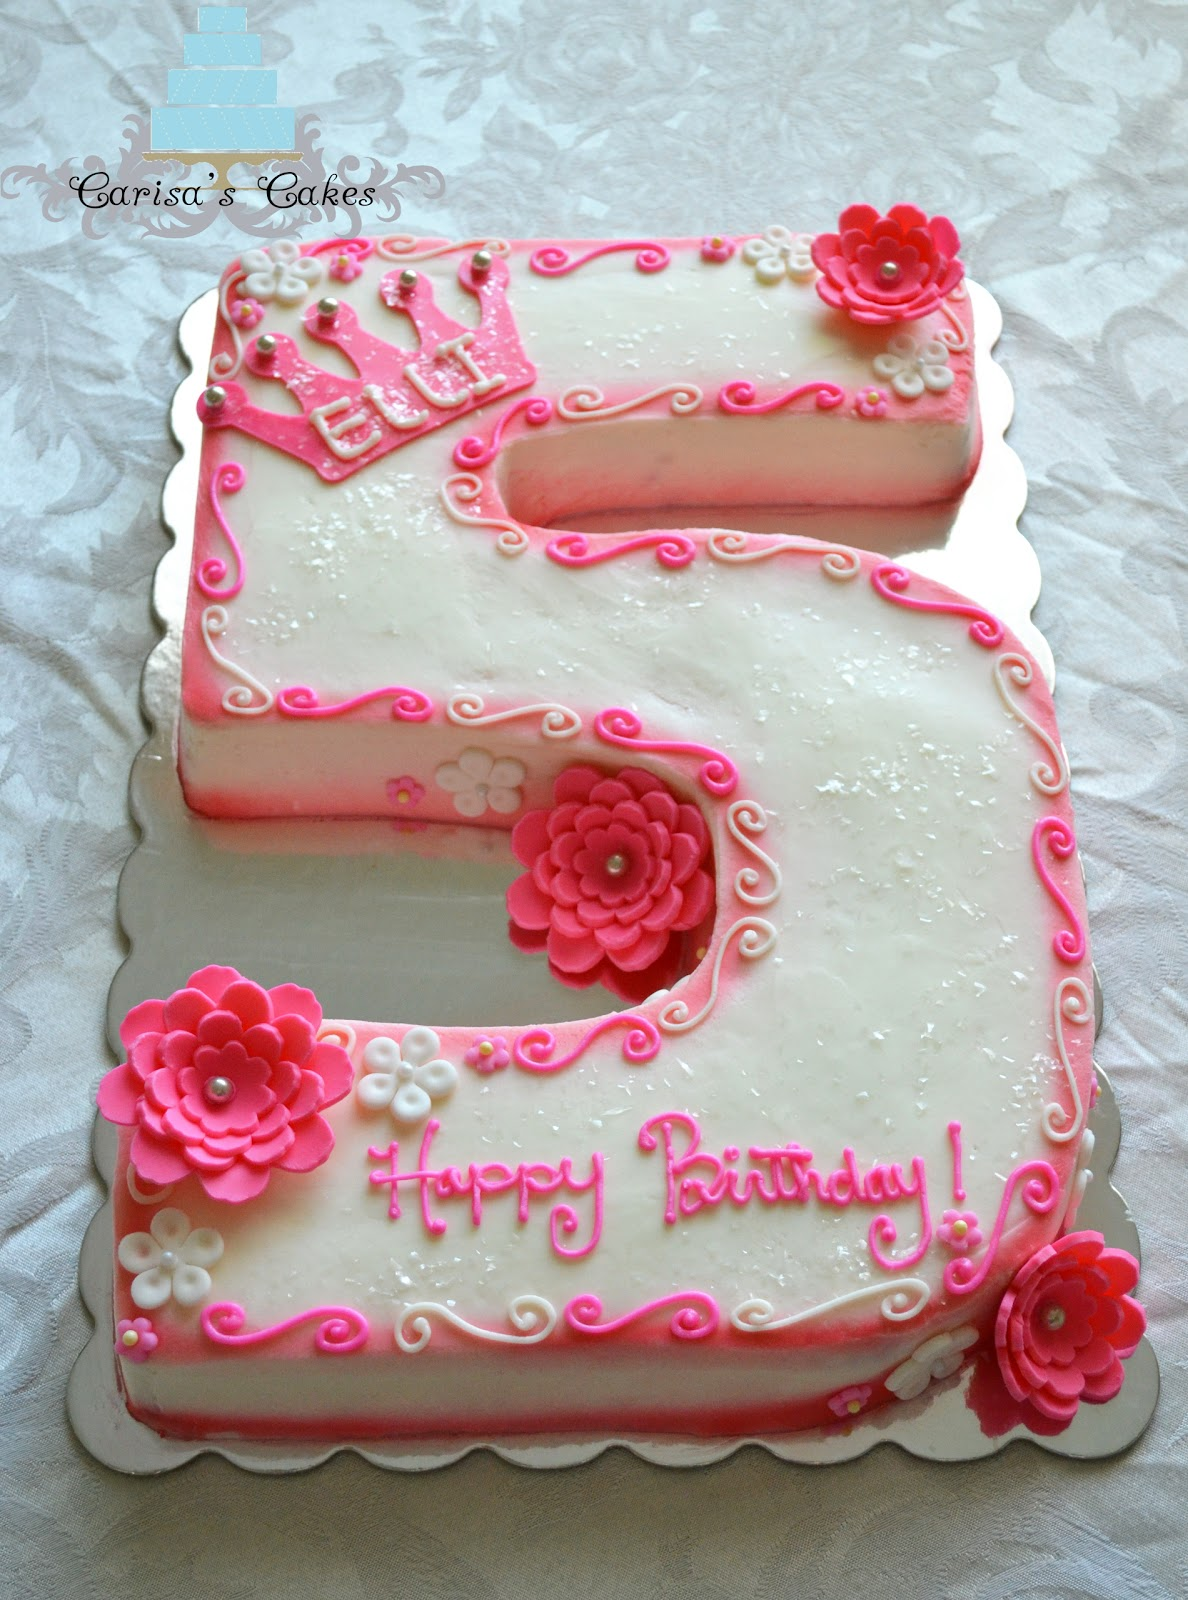 Birthday Cake Images With Photo : Carisa s Cakes: 5 Shaped Birthday Cake